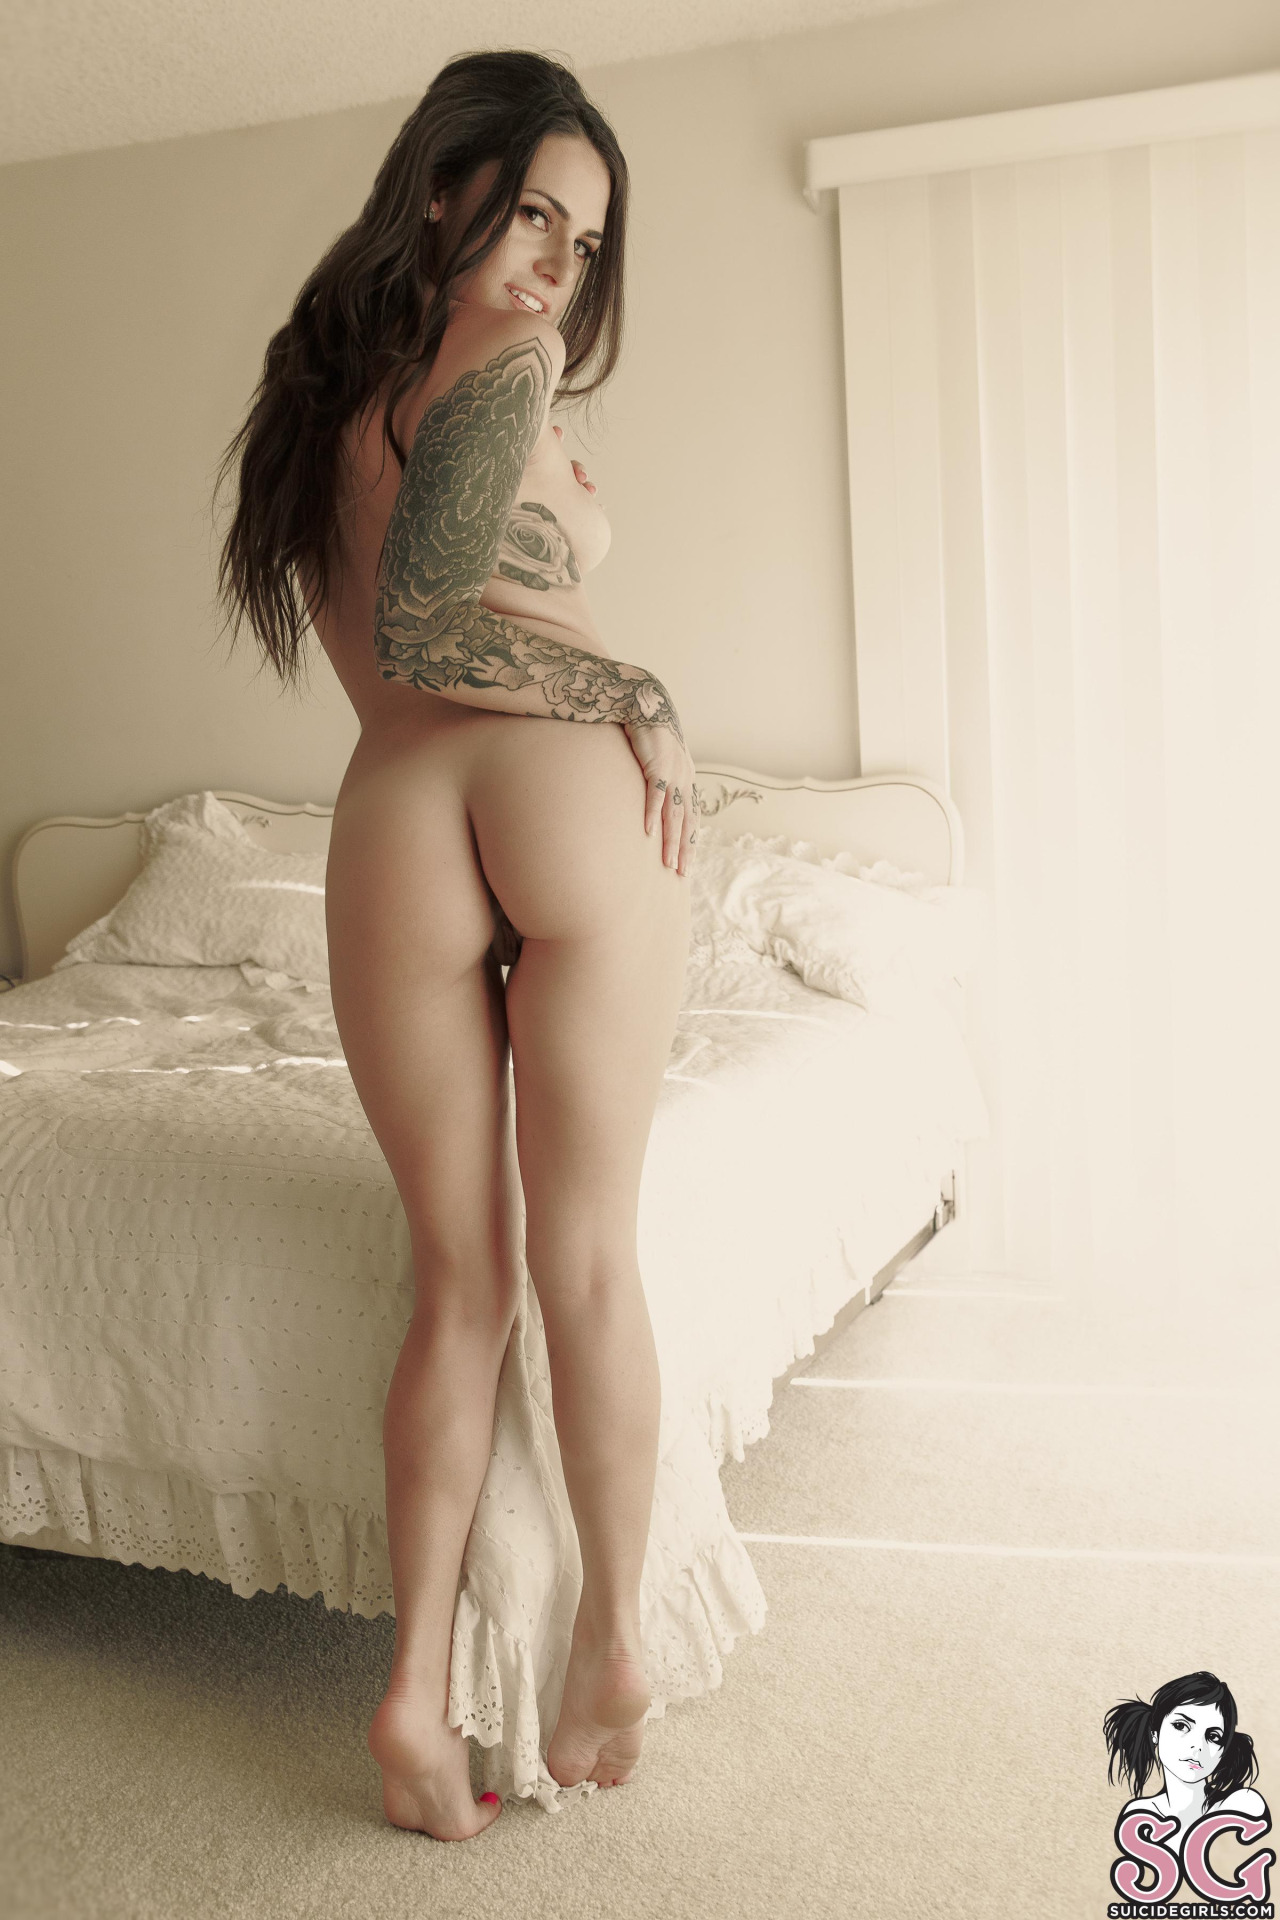 black-porn-suttin-suicide-girls-nude-picture-with